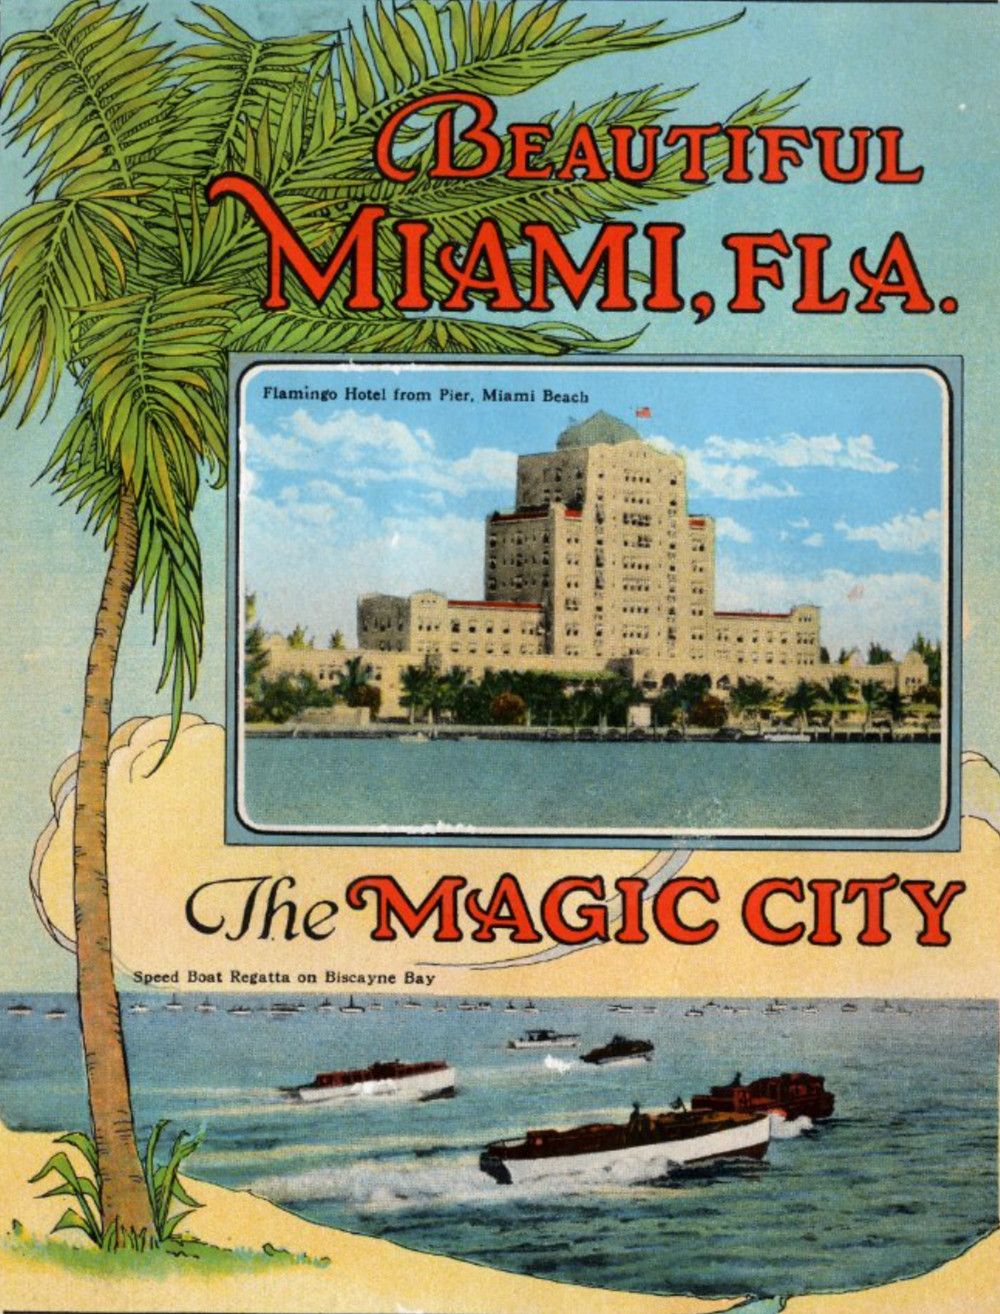 The S-Team is teeming with history. We got to know Miami from its founding to its future.